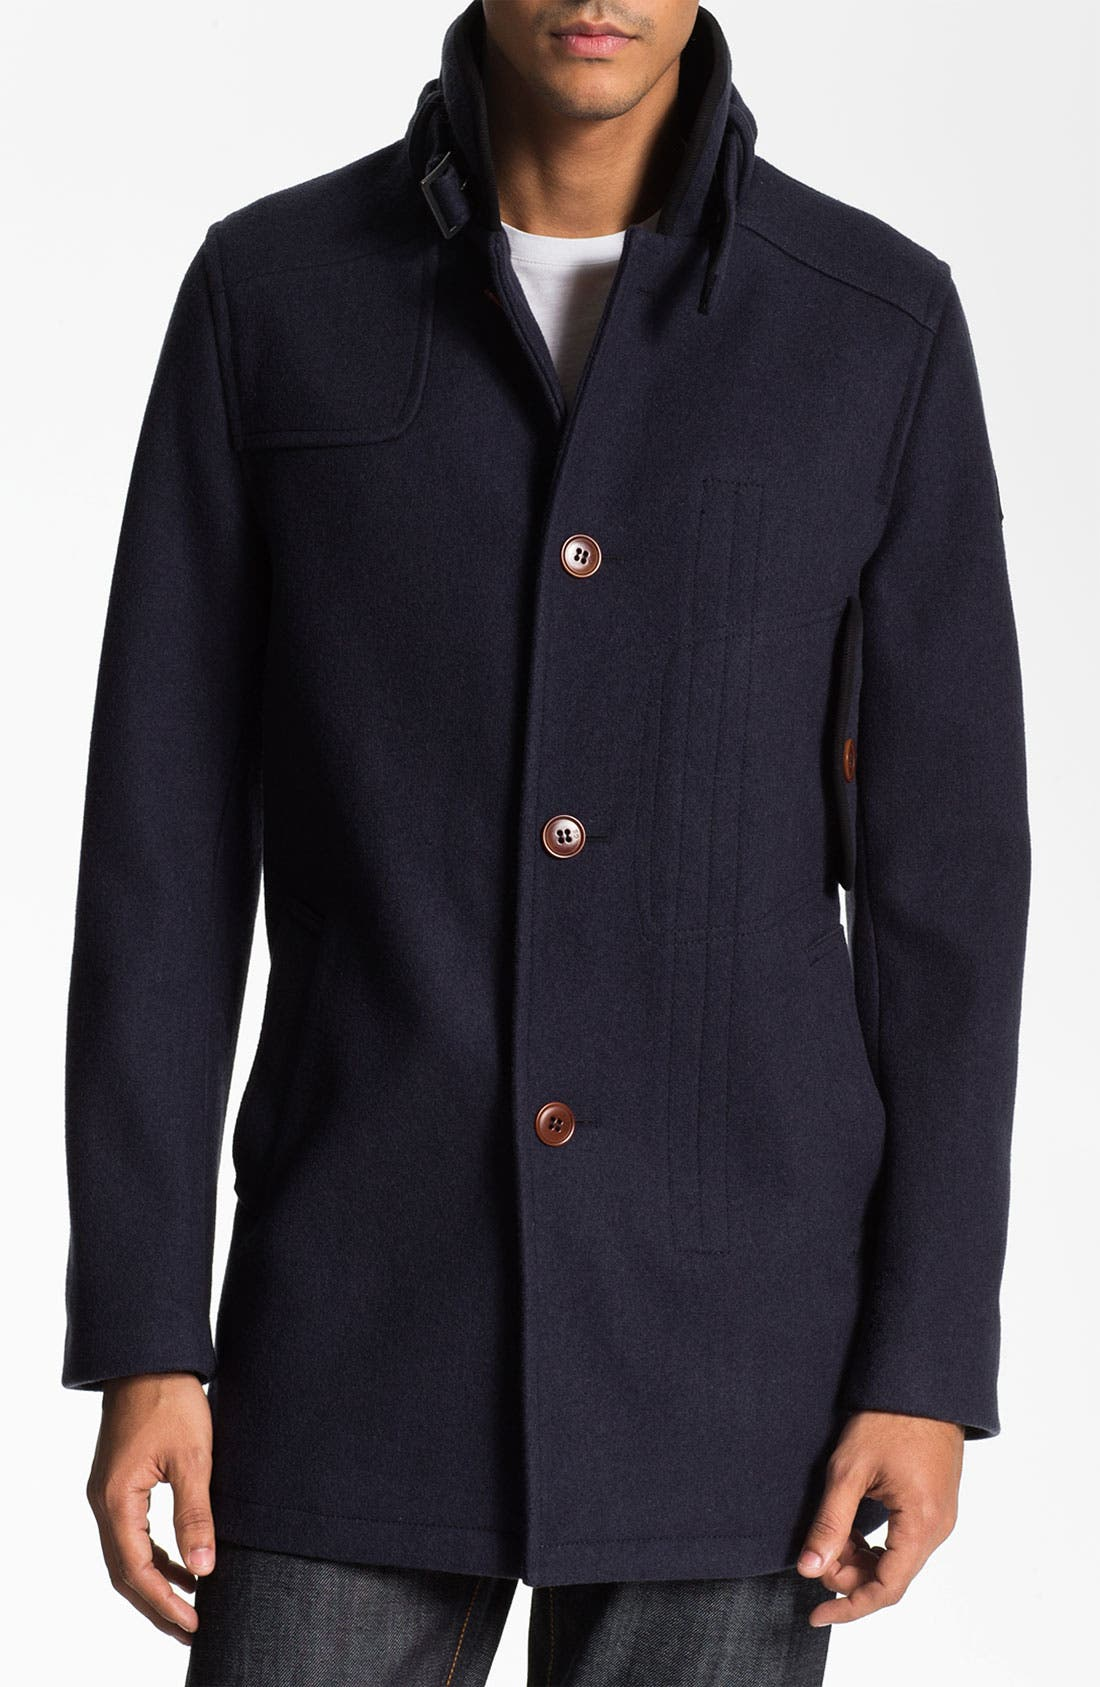 Alternate Image 1 Selected - G-Star Raw 'Decoy' Garber Trench Coat